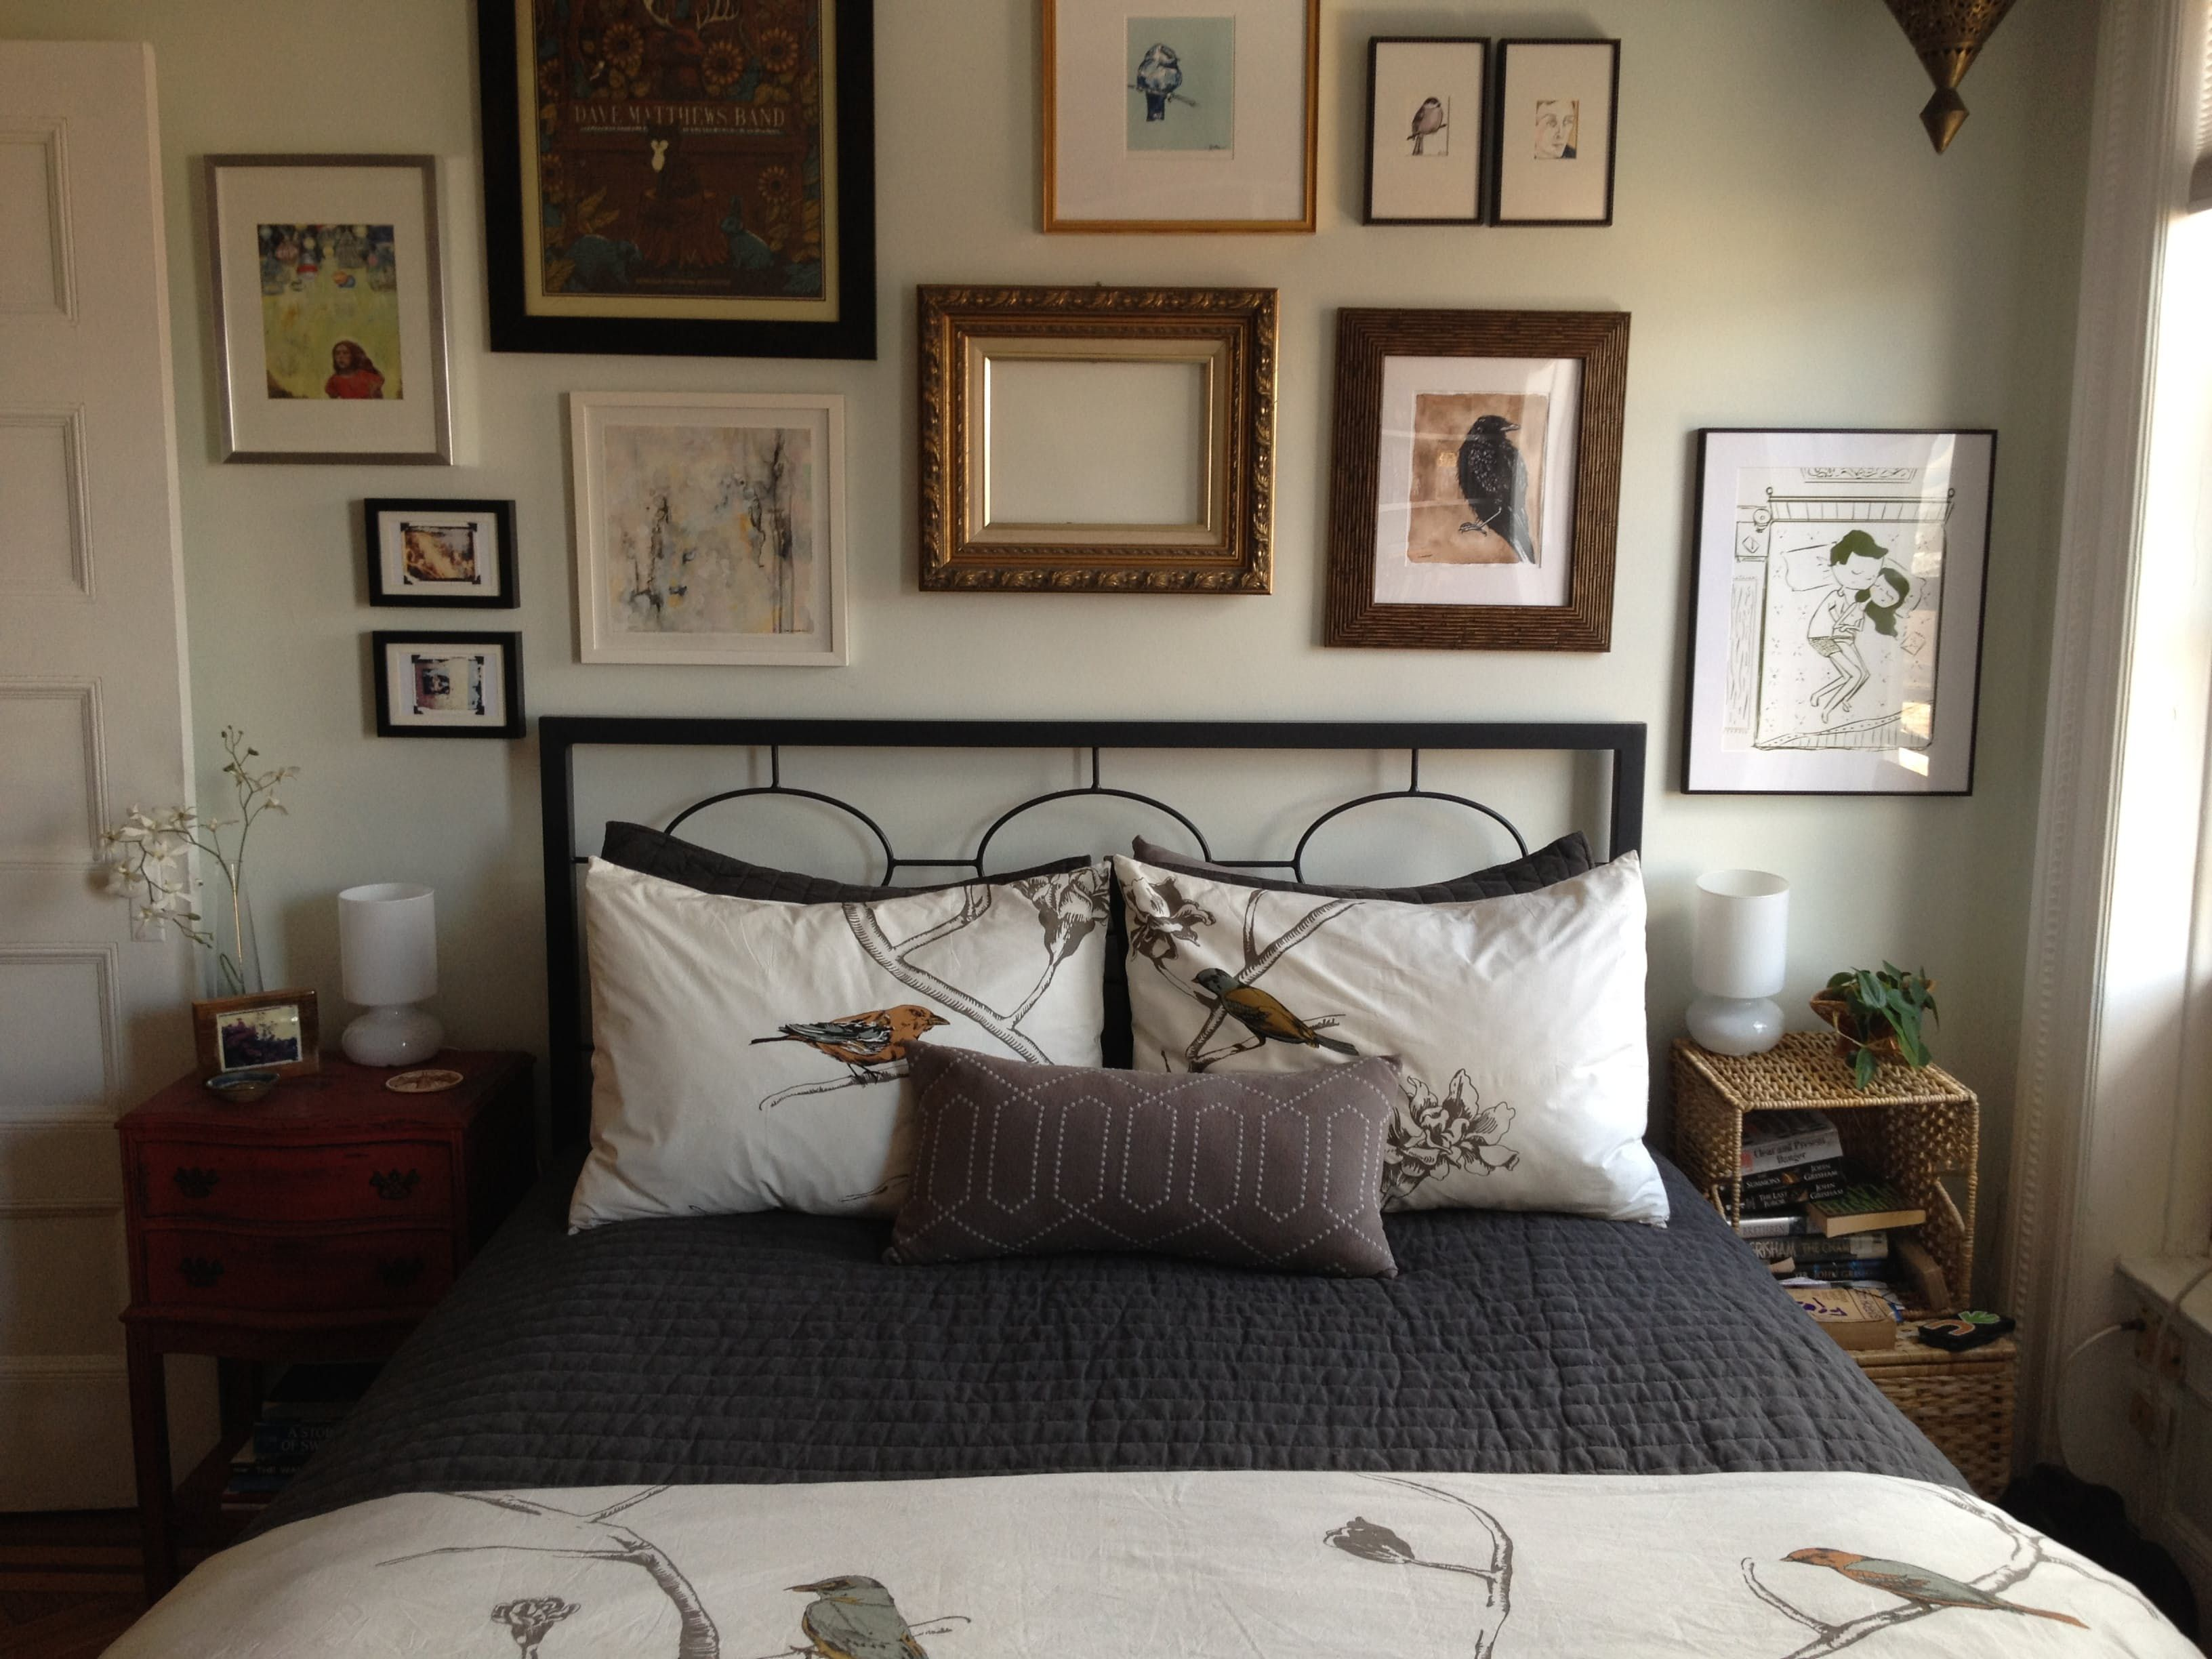 A Gallery of Art Above the Bed